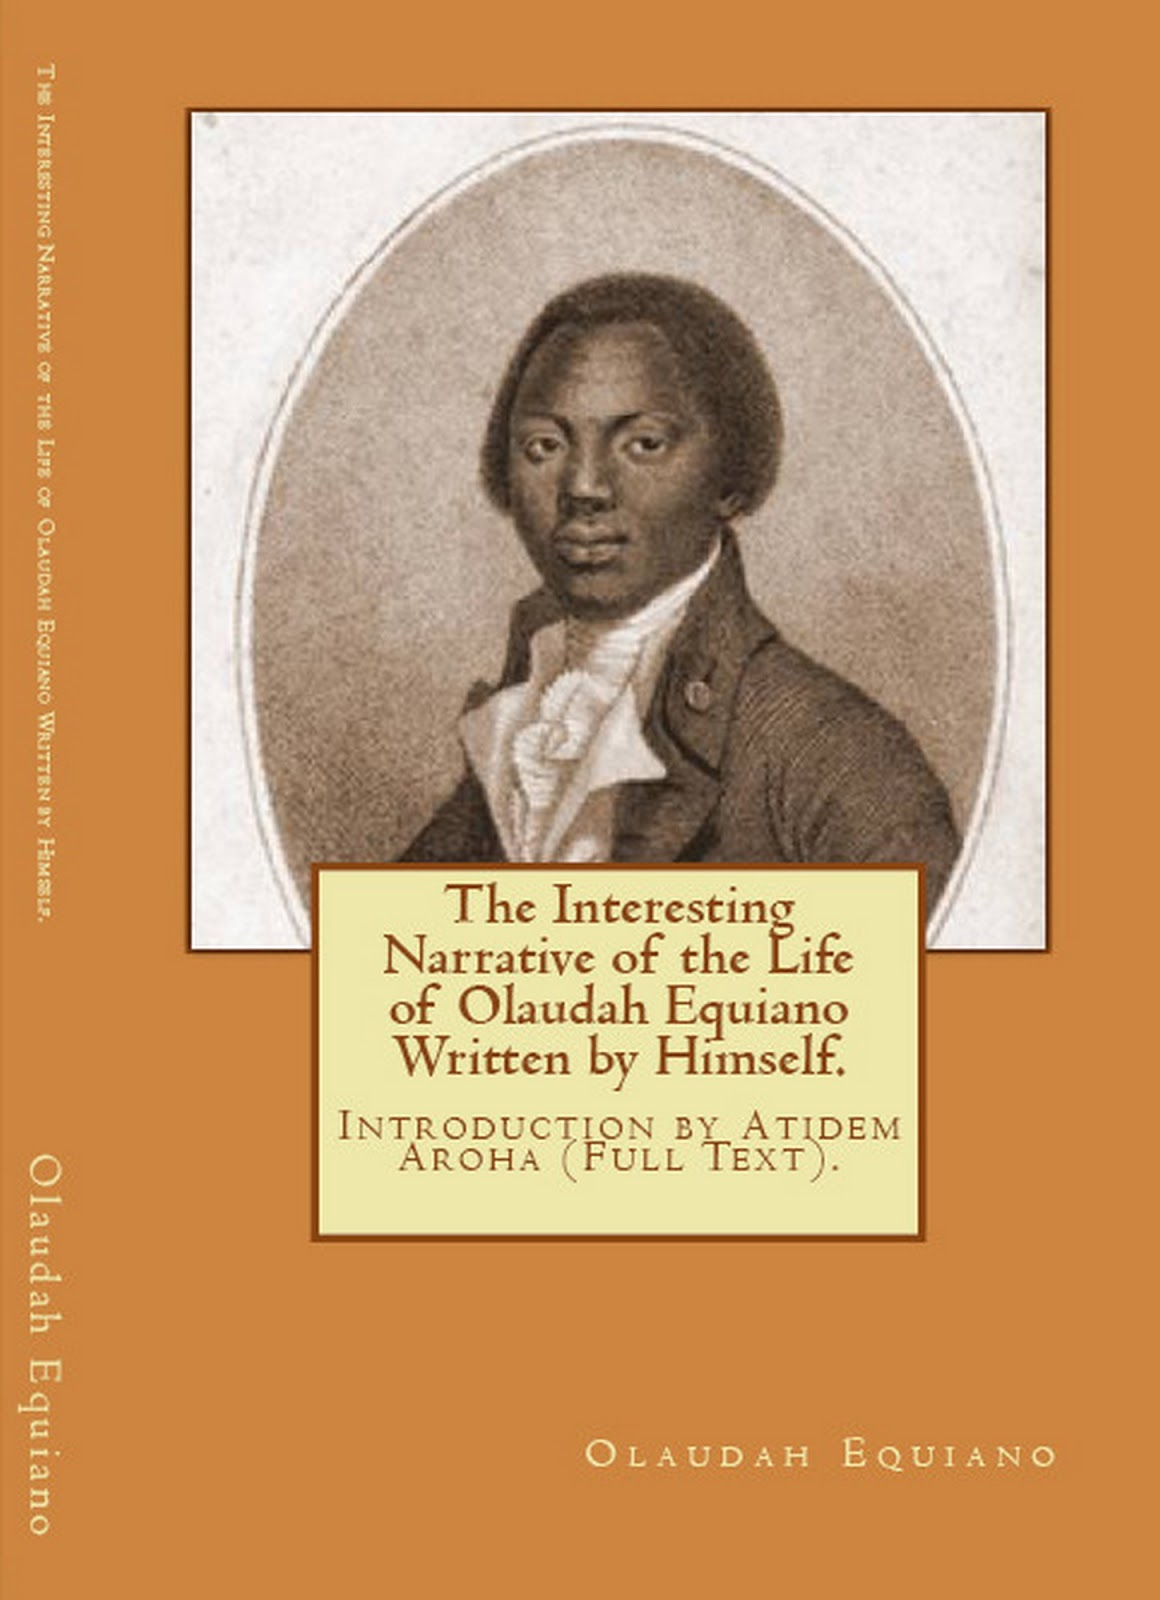 the interesting life of oladuah equiano Life ofolaudah equiano, or gustavus vassa, the  religious authority in olaudah equiano's interesting narrative: he certainly opposes all kinds ofphysical abuse as.